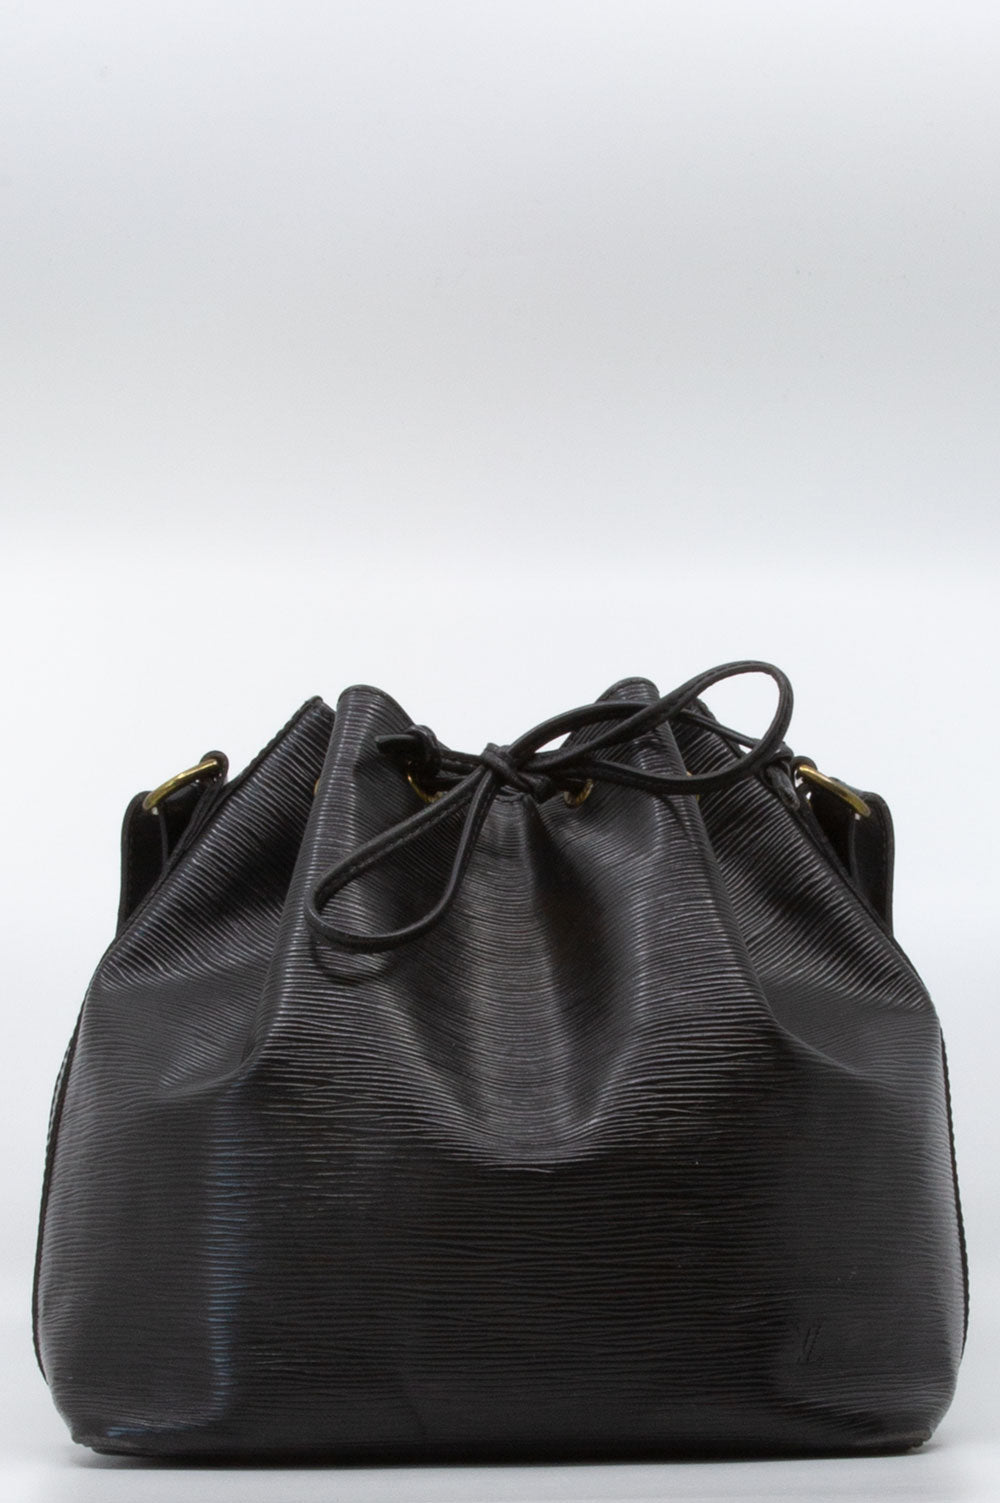 Louis Vuitton Petit Sac Noé in Schwarz mit goldener Hardware.